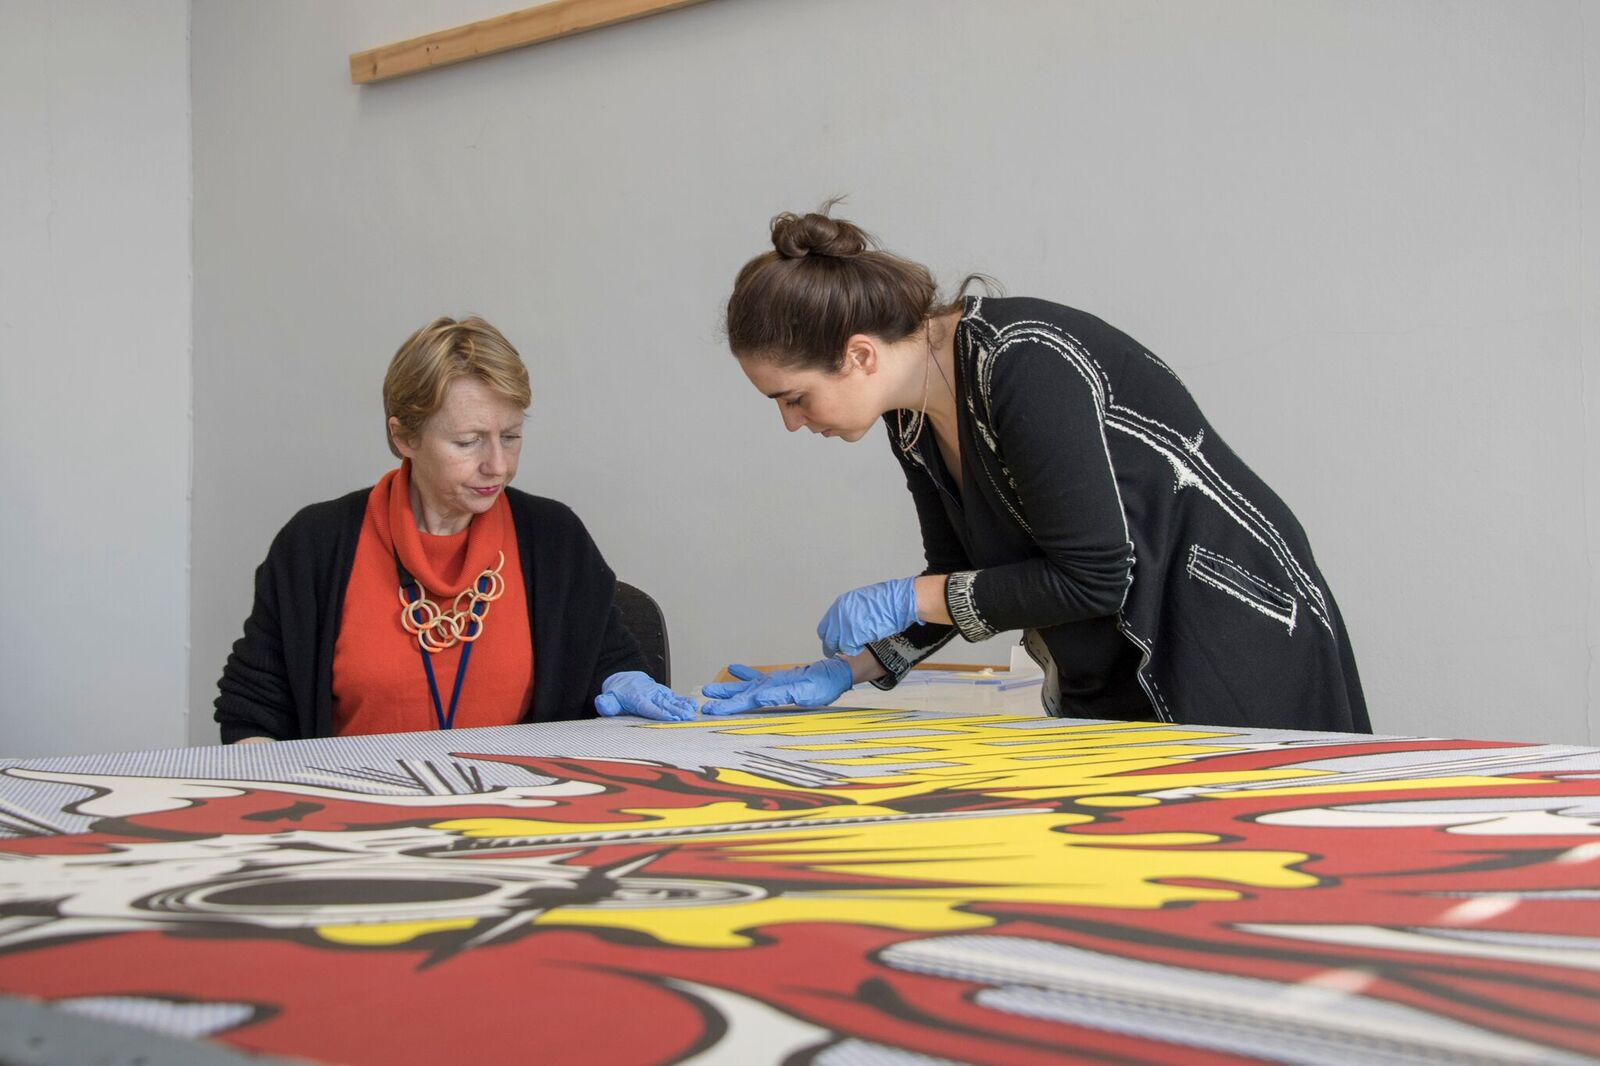 Conservation science researcher Angelica Bartoletti (right) and paintings conservator Rachel Barker during..._preview.jpeg